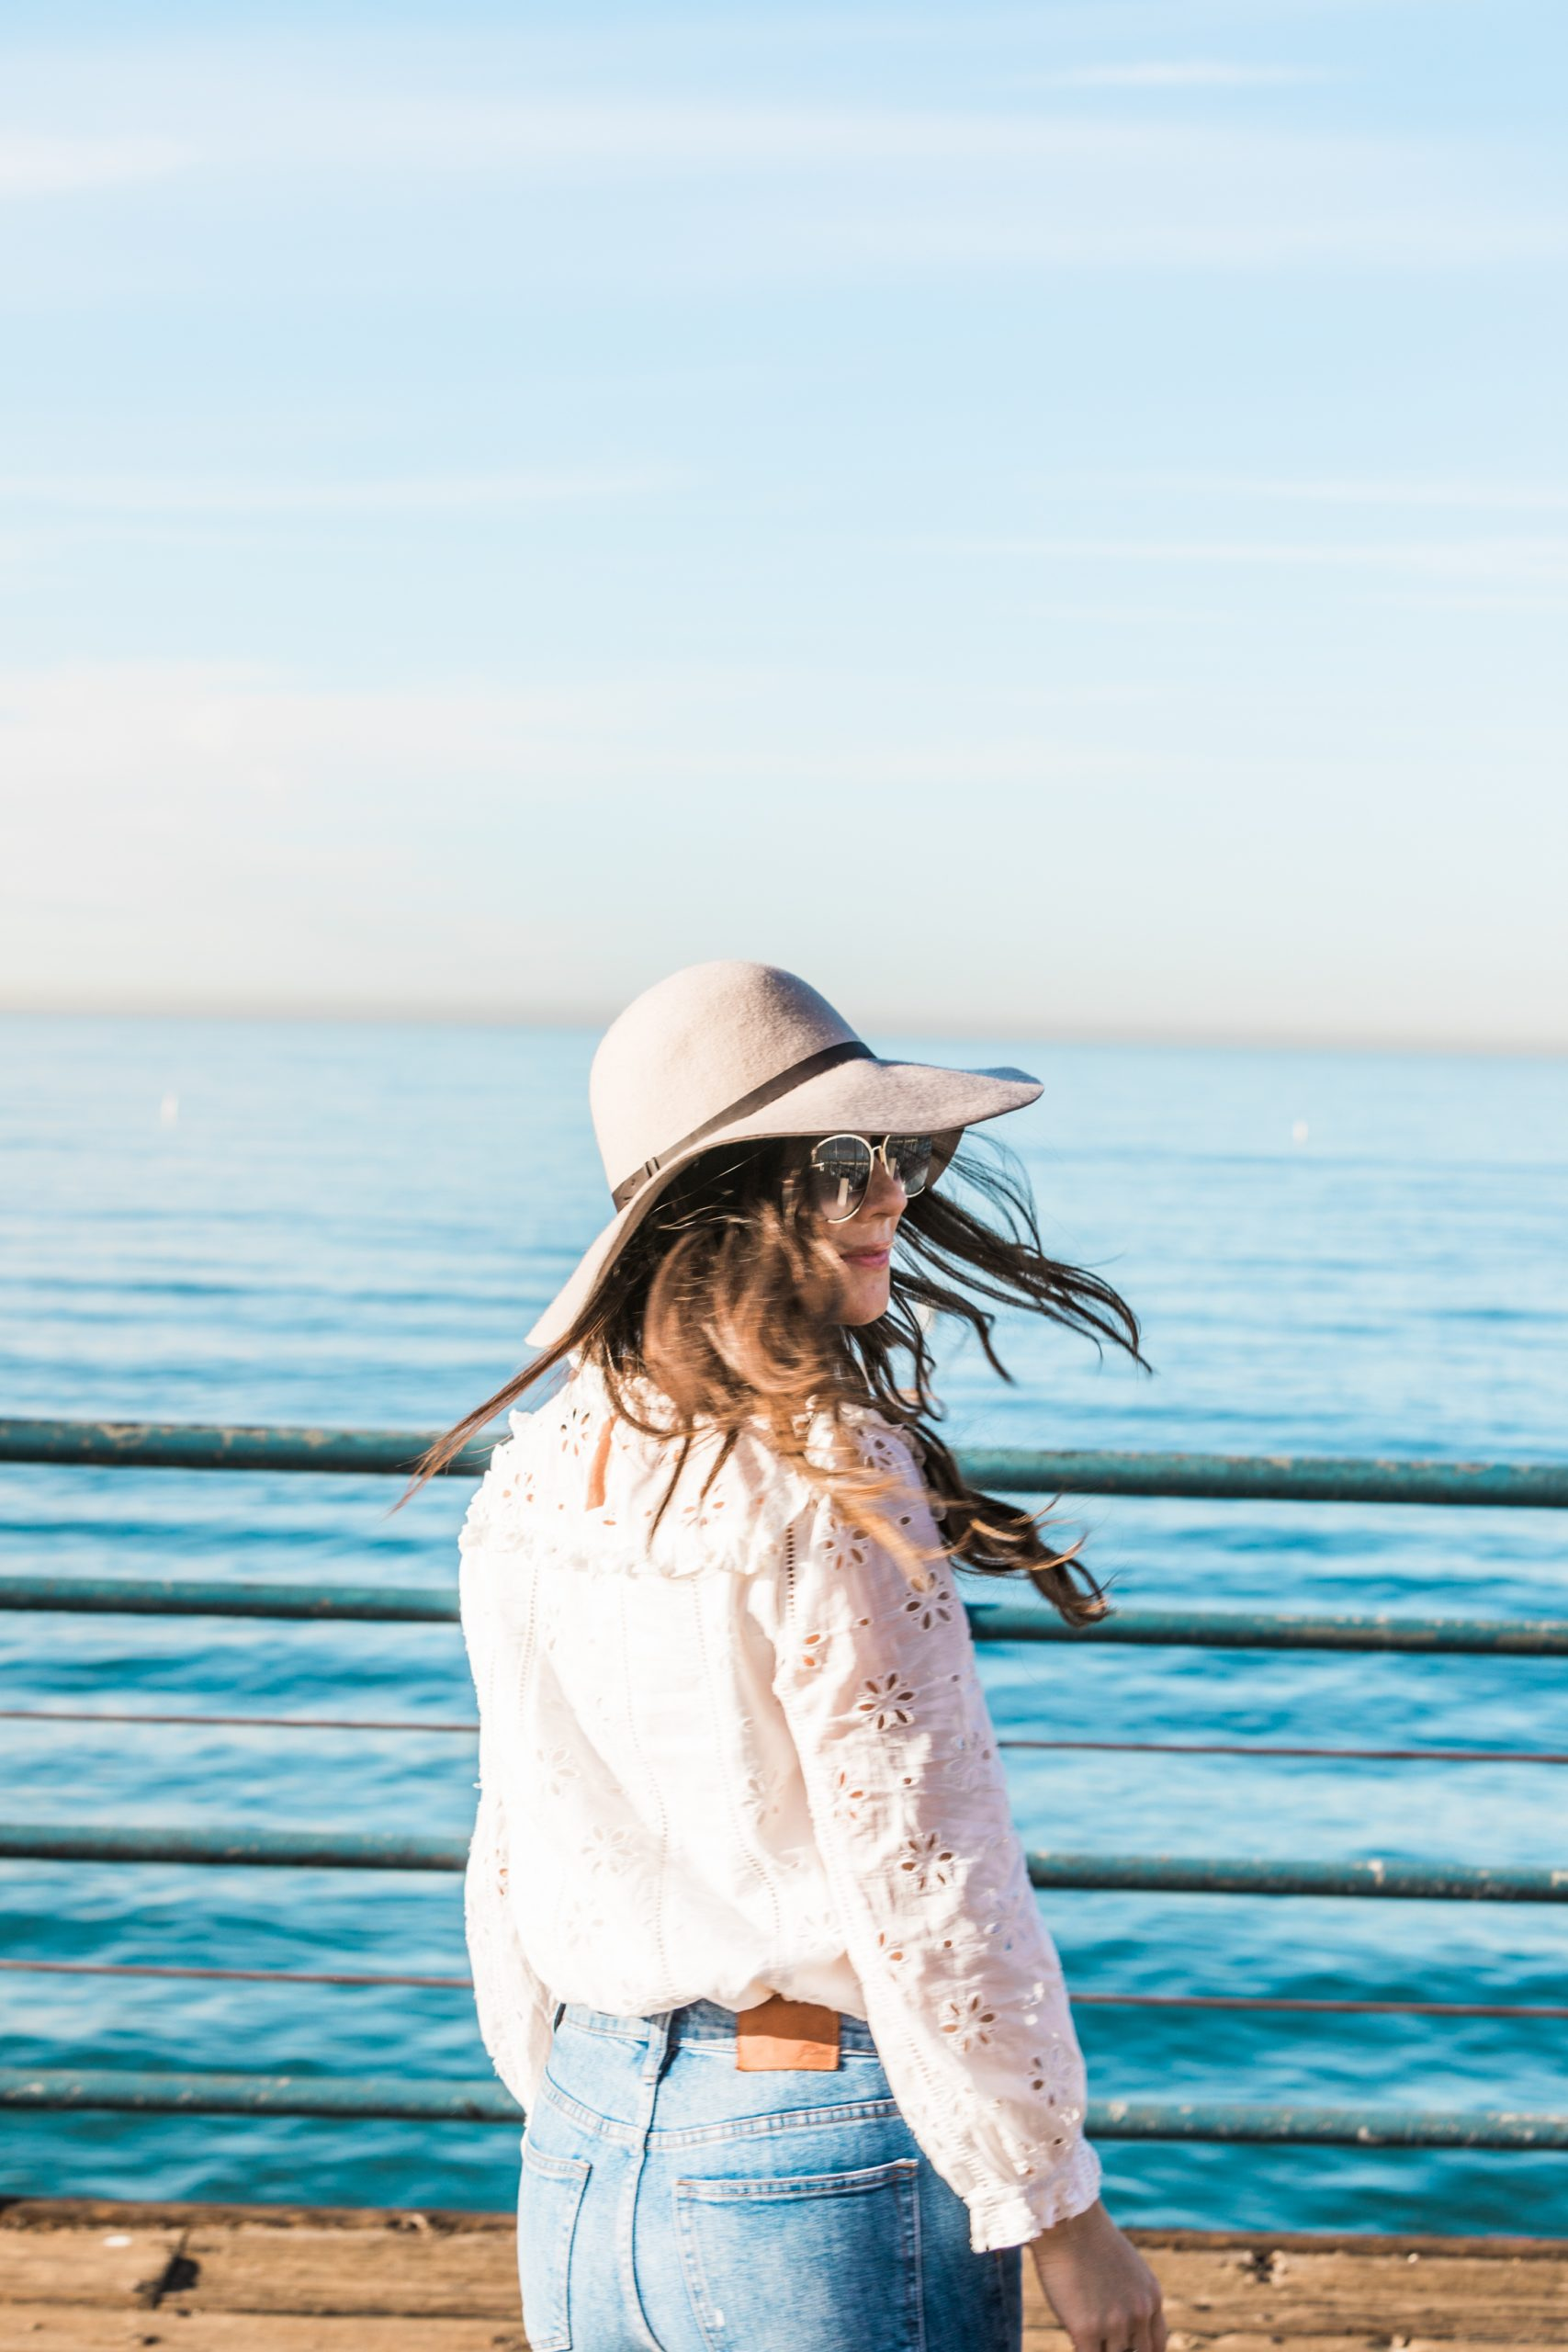 Woman wearing a hat and maxi skirt standing on Santa Monica Beach Pier smiling with ocean in background